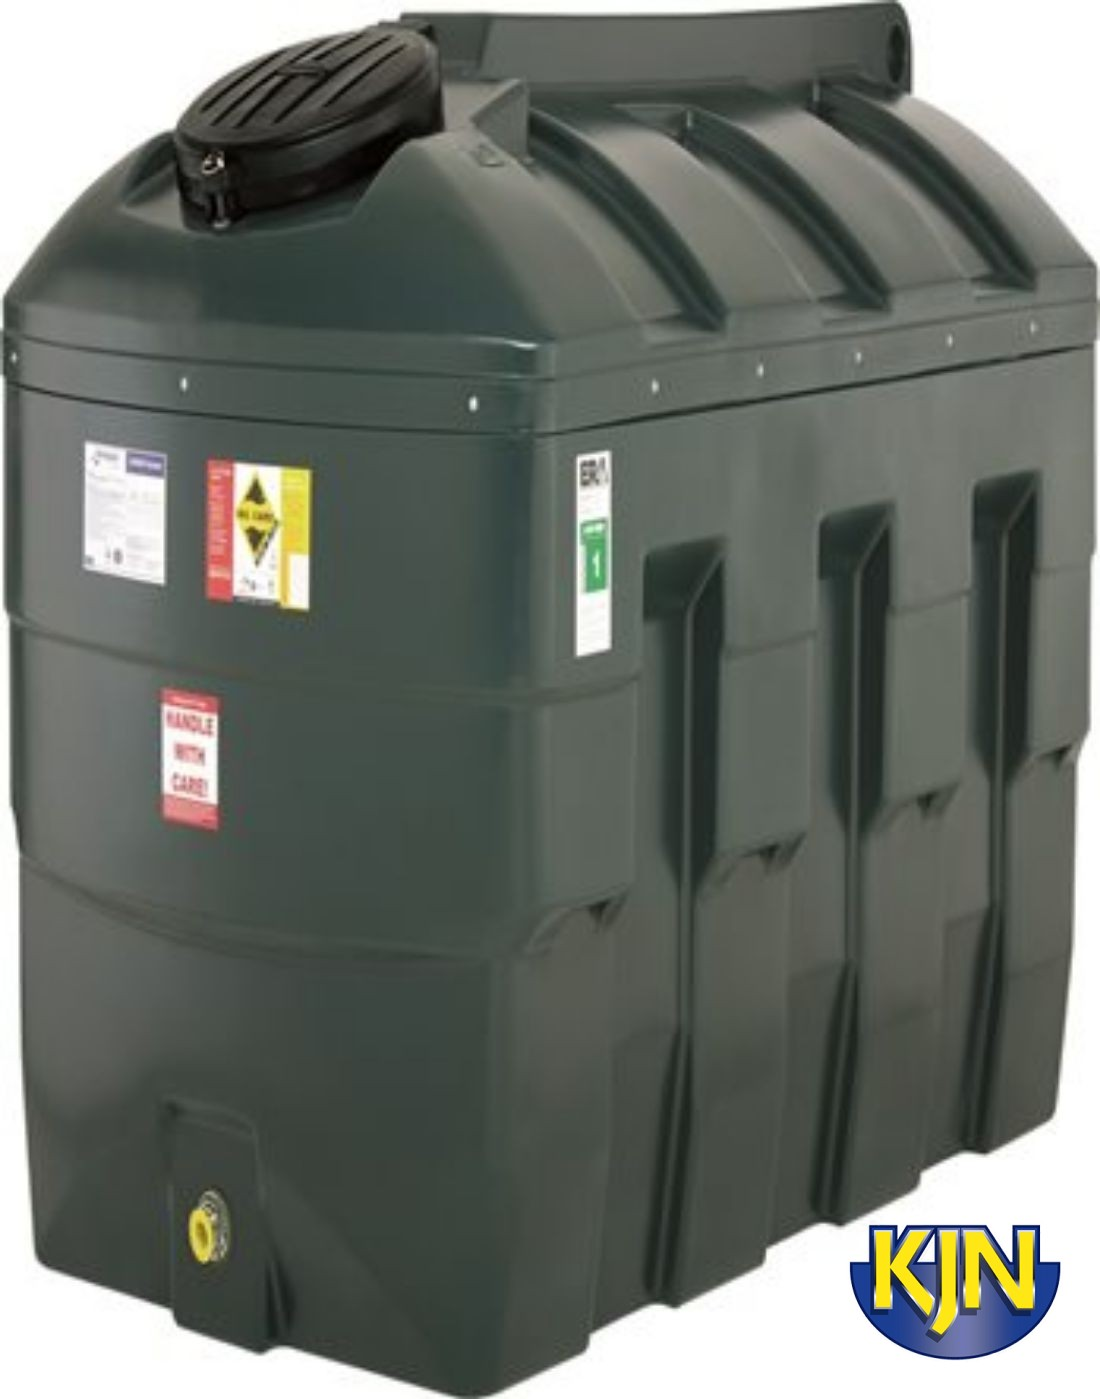 Harlequin 2500 Litre Bunded Tank With Apollo Gauge